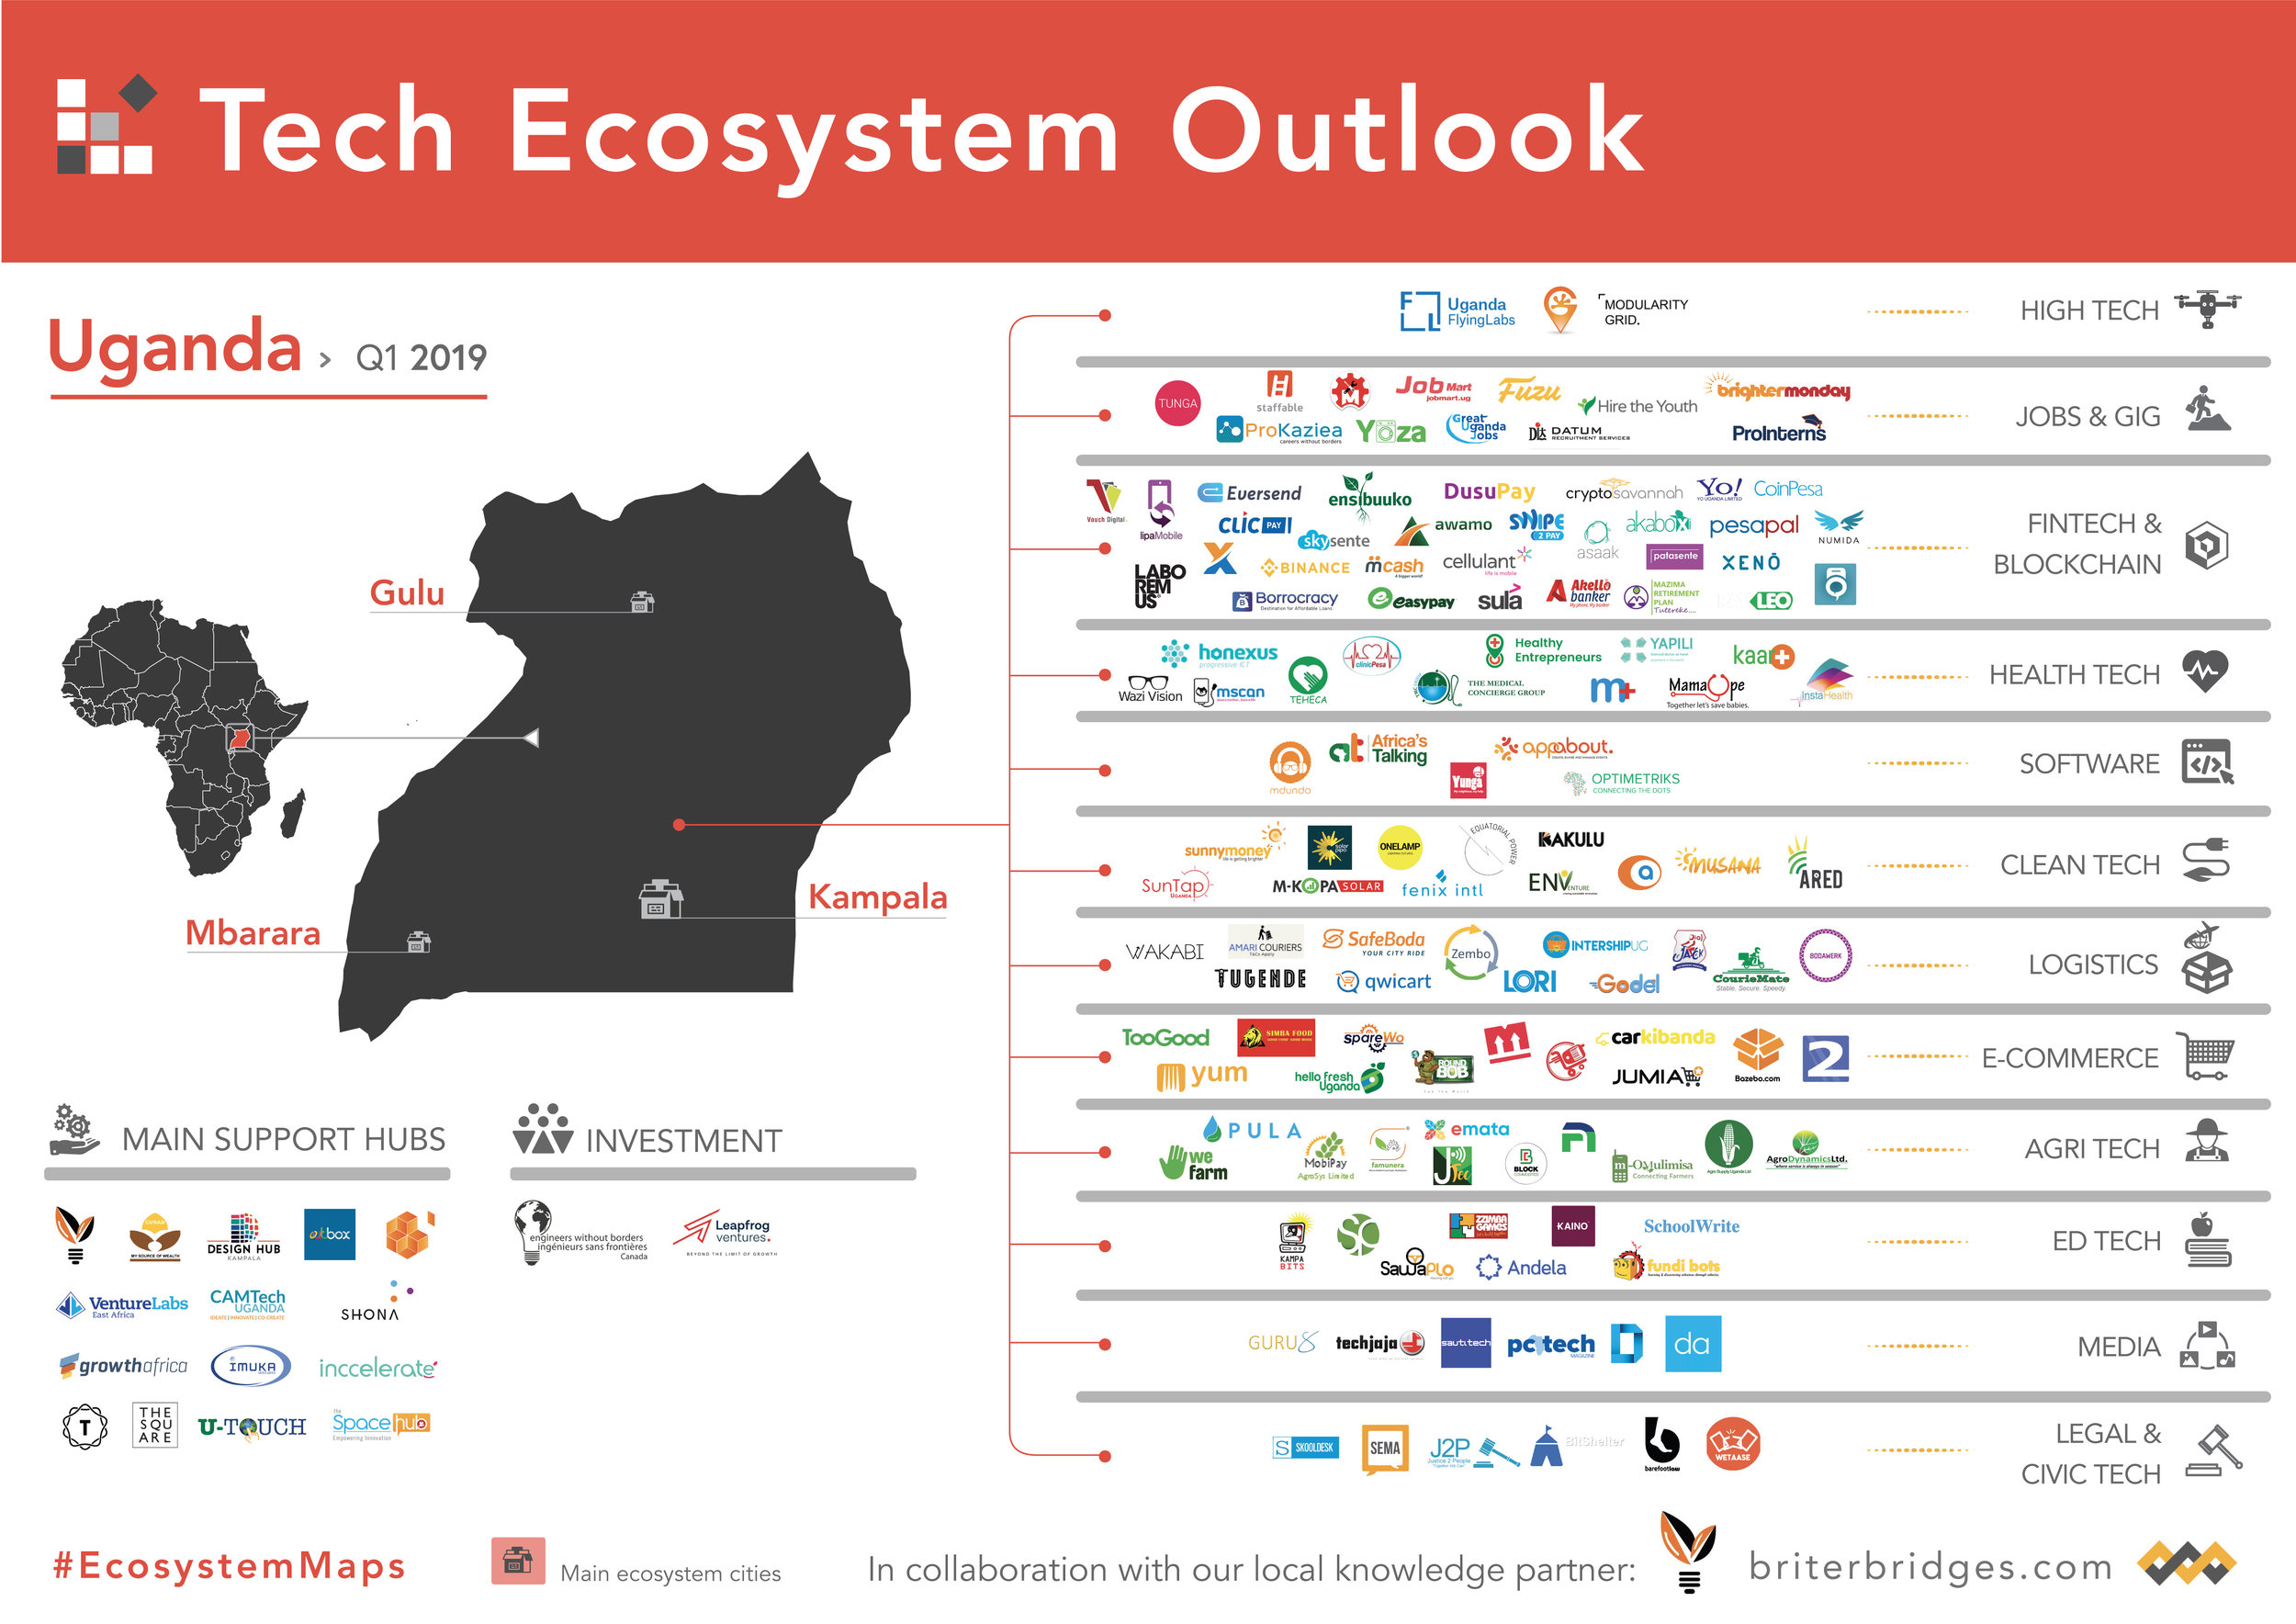 Uganda's Tech Ecosystem Map